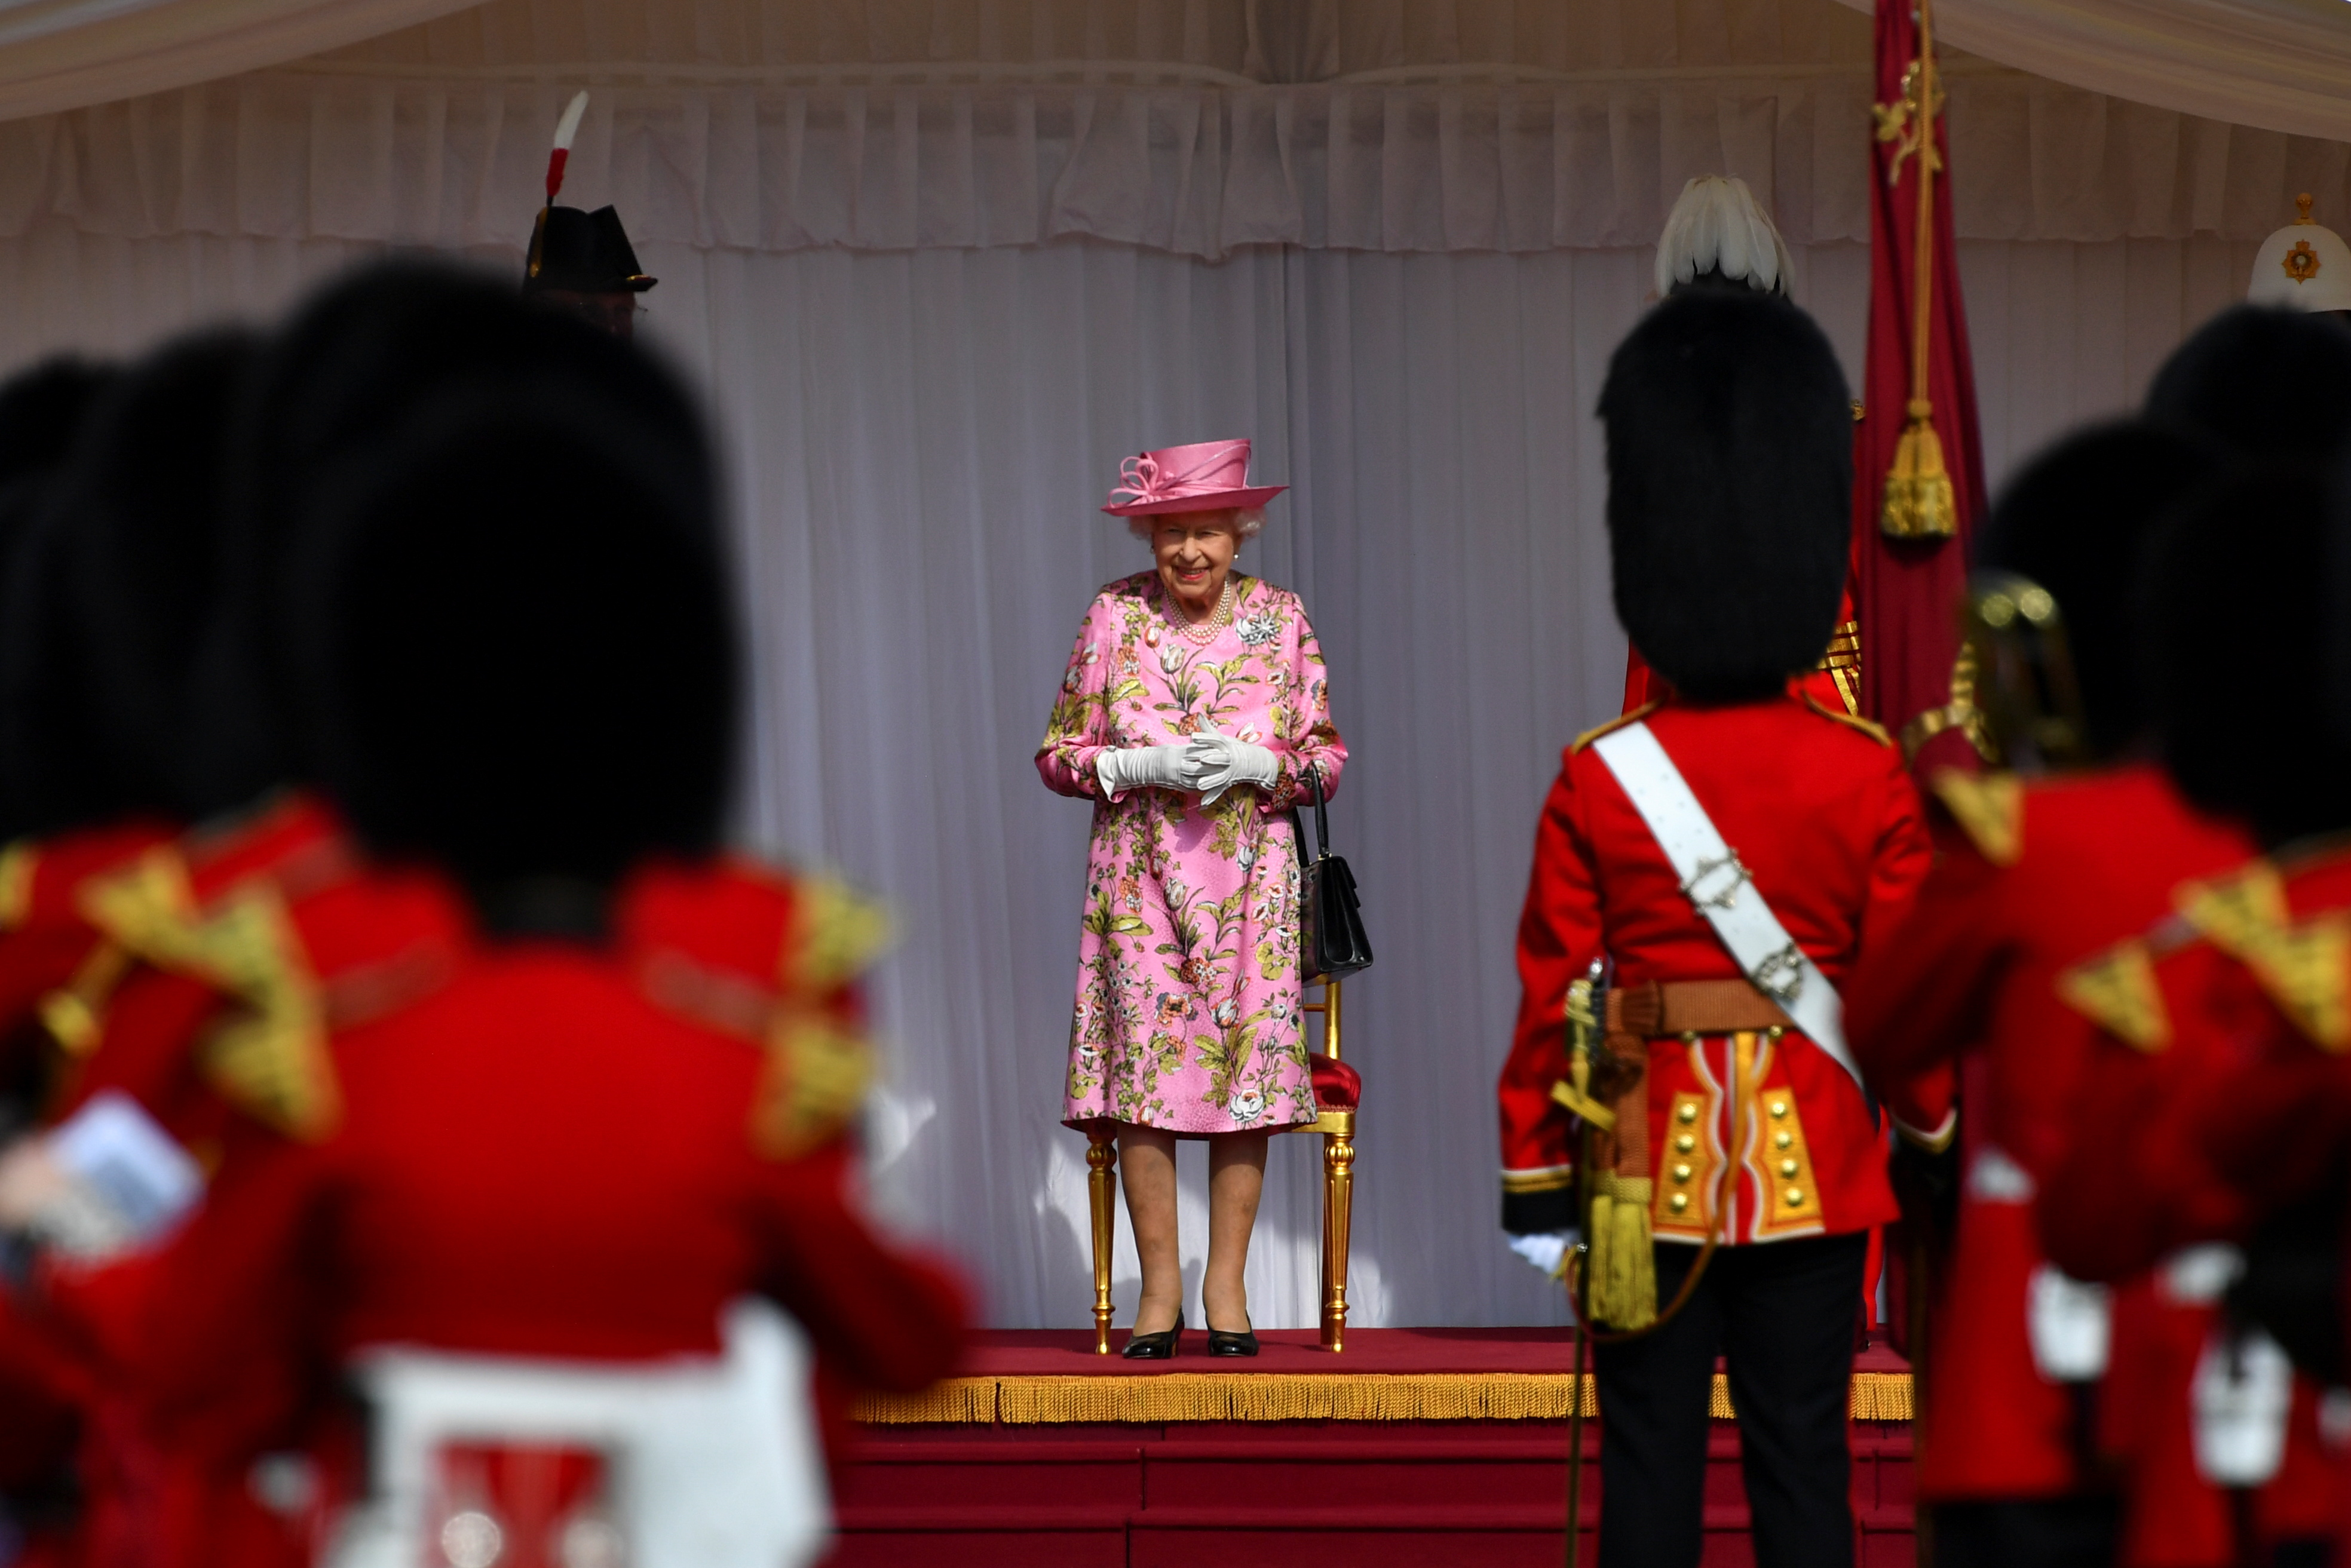 Britain's Queen Elizabeth stands in front of members of the Royal Guard ahead of her meeting with U.S. President Joe Biden and first lady Jill Biden, at Windsor Castle in Windsor, Britain, June 13, 2021. REUTERS/Dylan Martinez